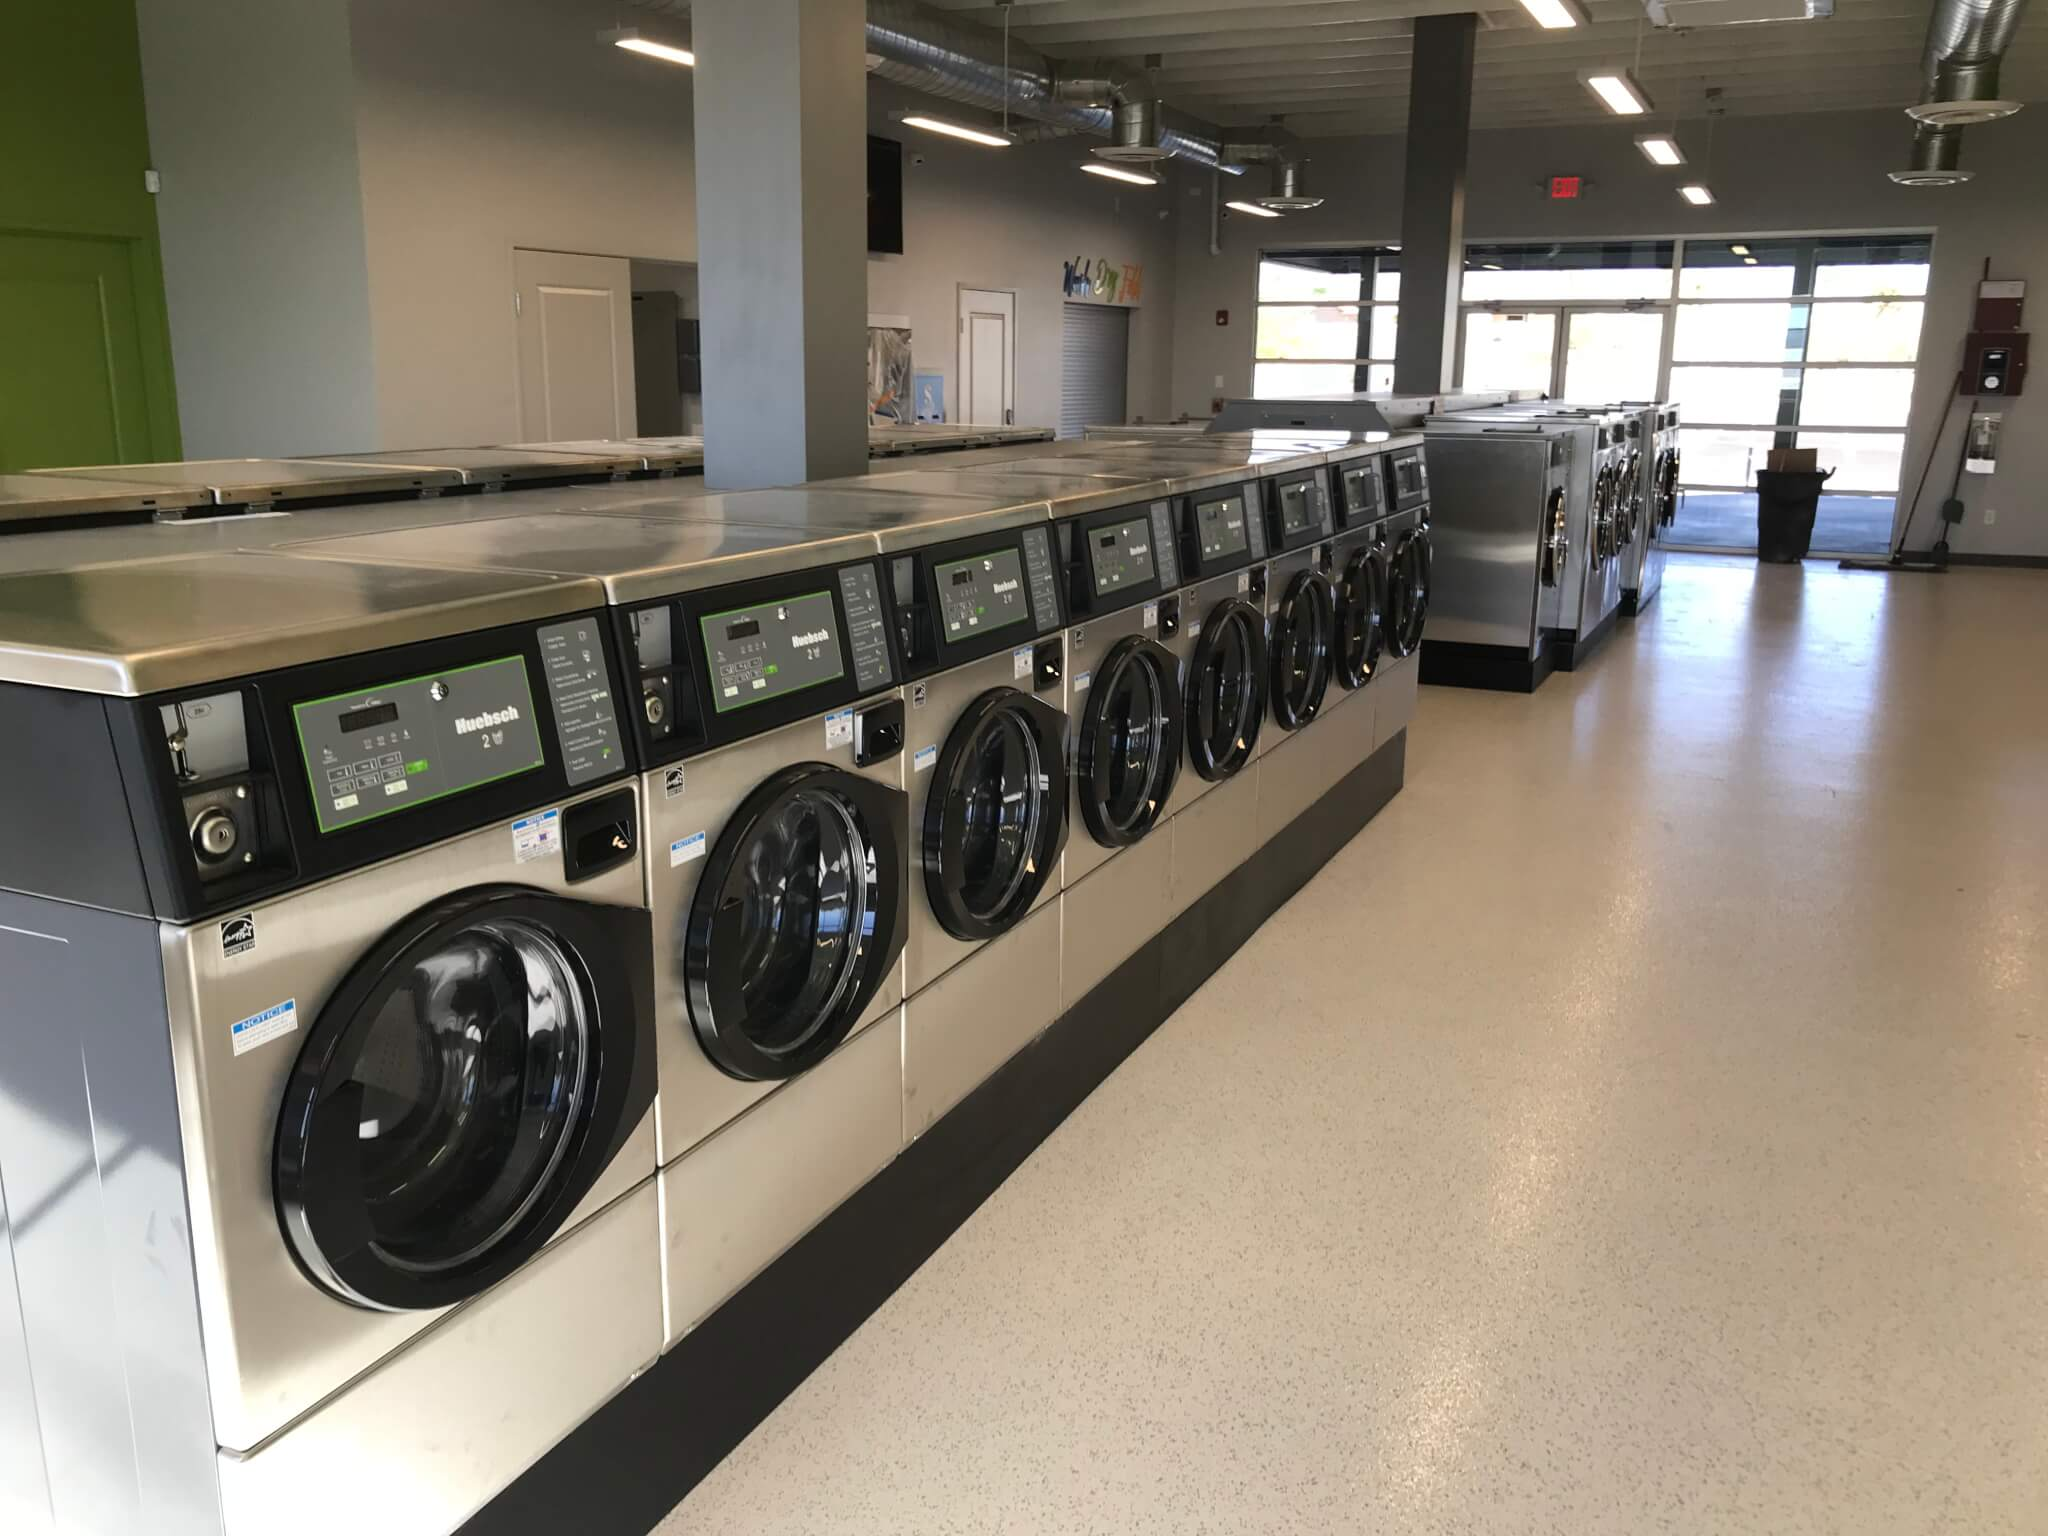 Modern Laundromat - Coin & Professional Equipment Co.